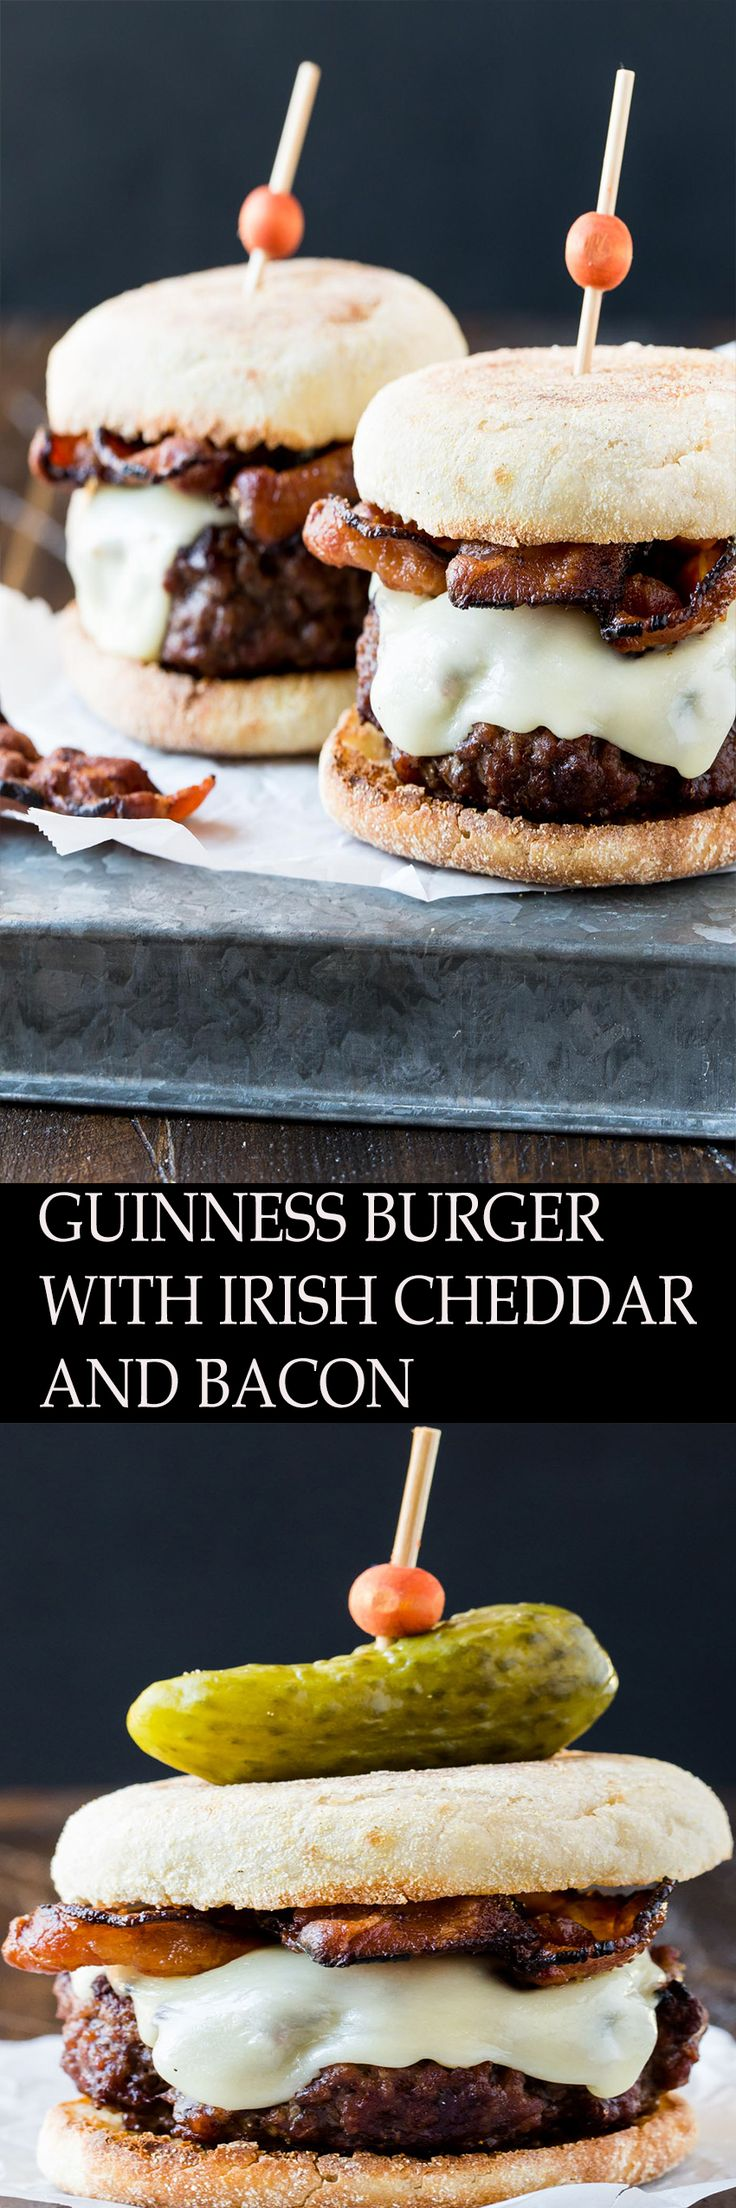 Calling all burger lovers! Make sure to include this Guinness Burger with Irish Cheddar and Bacon on your St. Patrick's Day party menu. Even folks who don't usually like beer love these burgers. The recipe calls for a mere 1/4 cup of brew, so we're not talking in-your-face Guinness taste. Rather the beer adds a nice depth of flavor that melds nicely with the garlic, onions and dijon mustard.